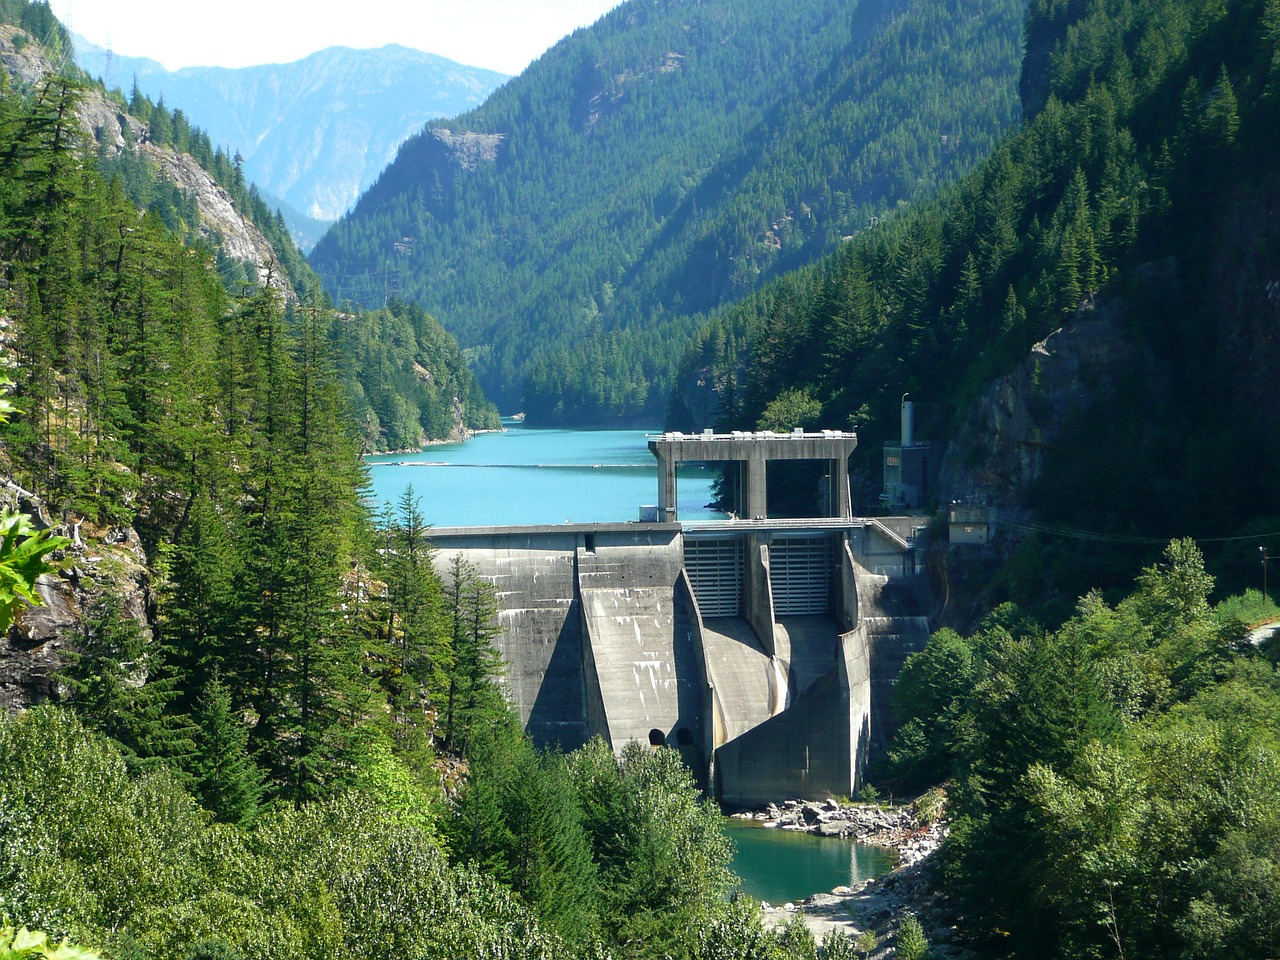 A dam in the Cascade Mountains